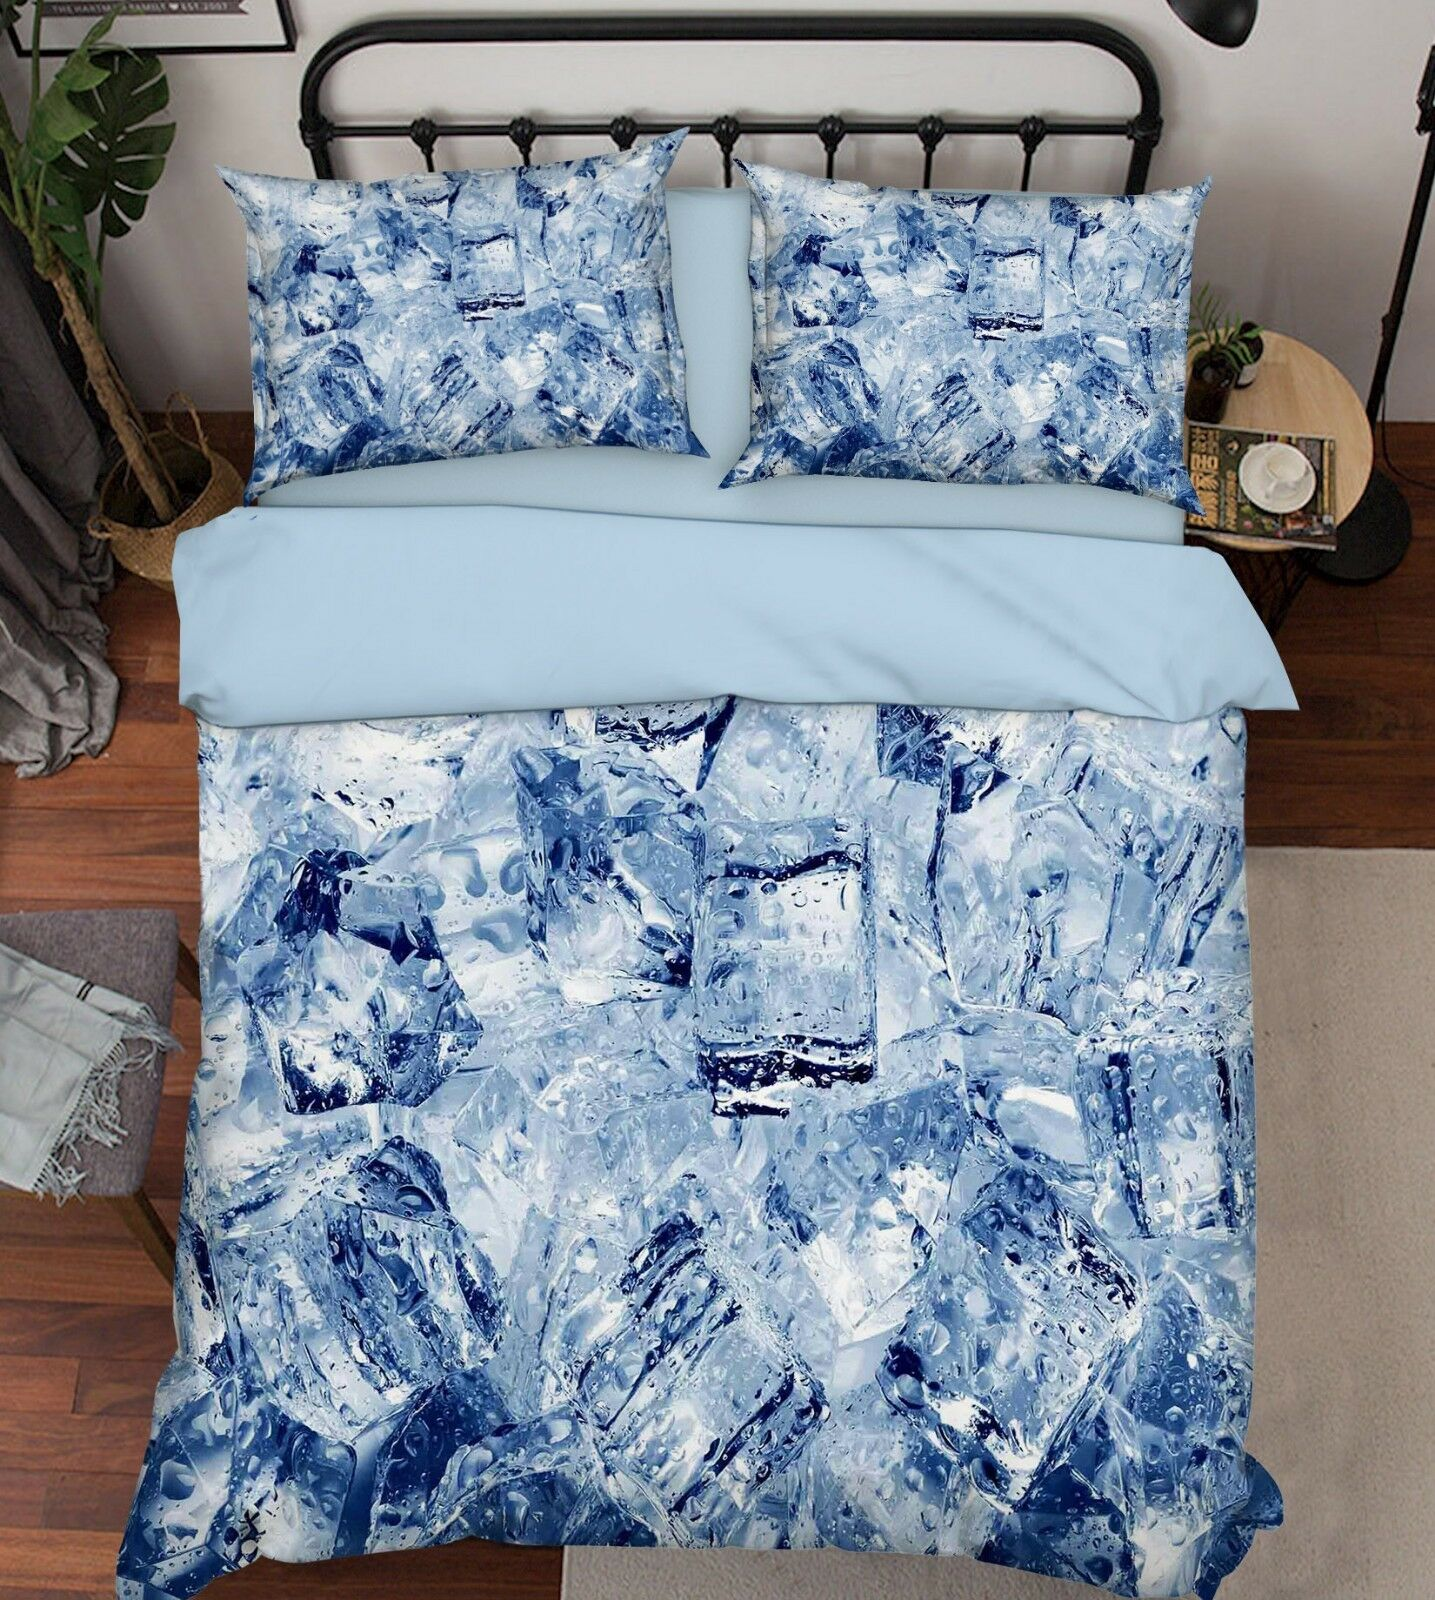 3D Blau Ice Cubes 887 Bed Pillowcases Quilt Duvet Cover Set Single Queen King CA